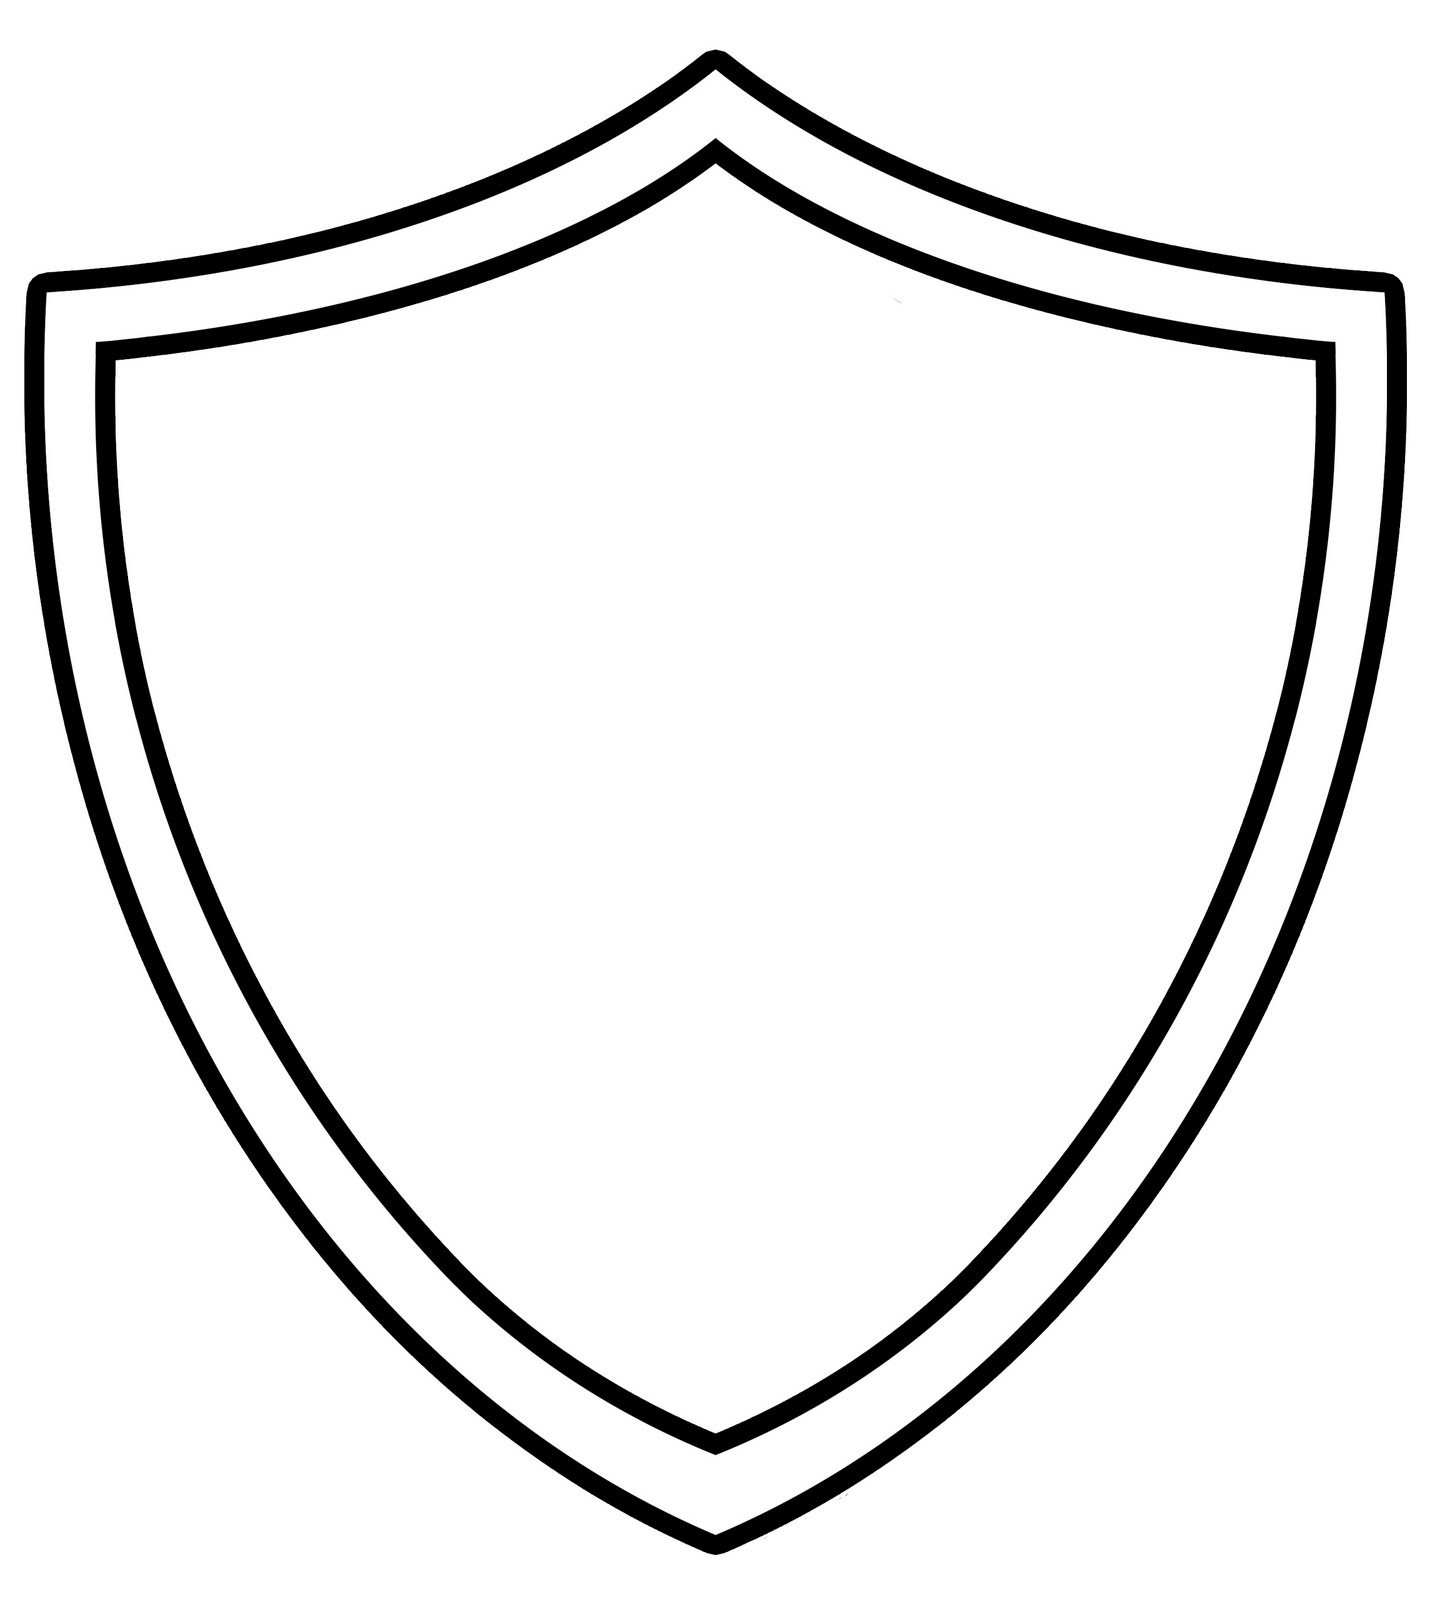 Images Of Shields - ClipArt Best